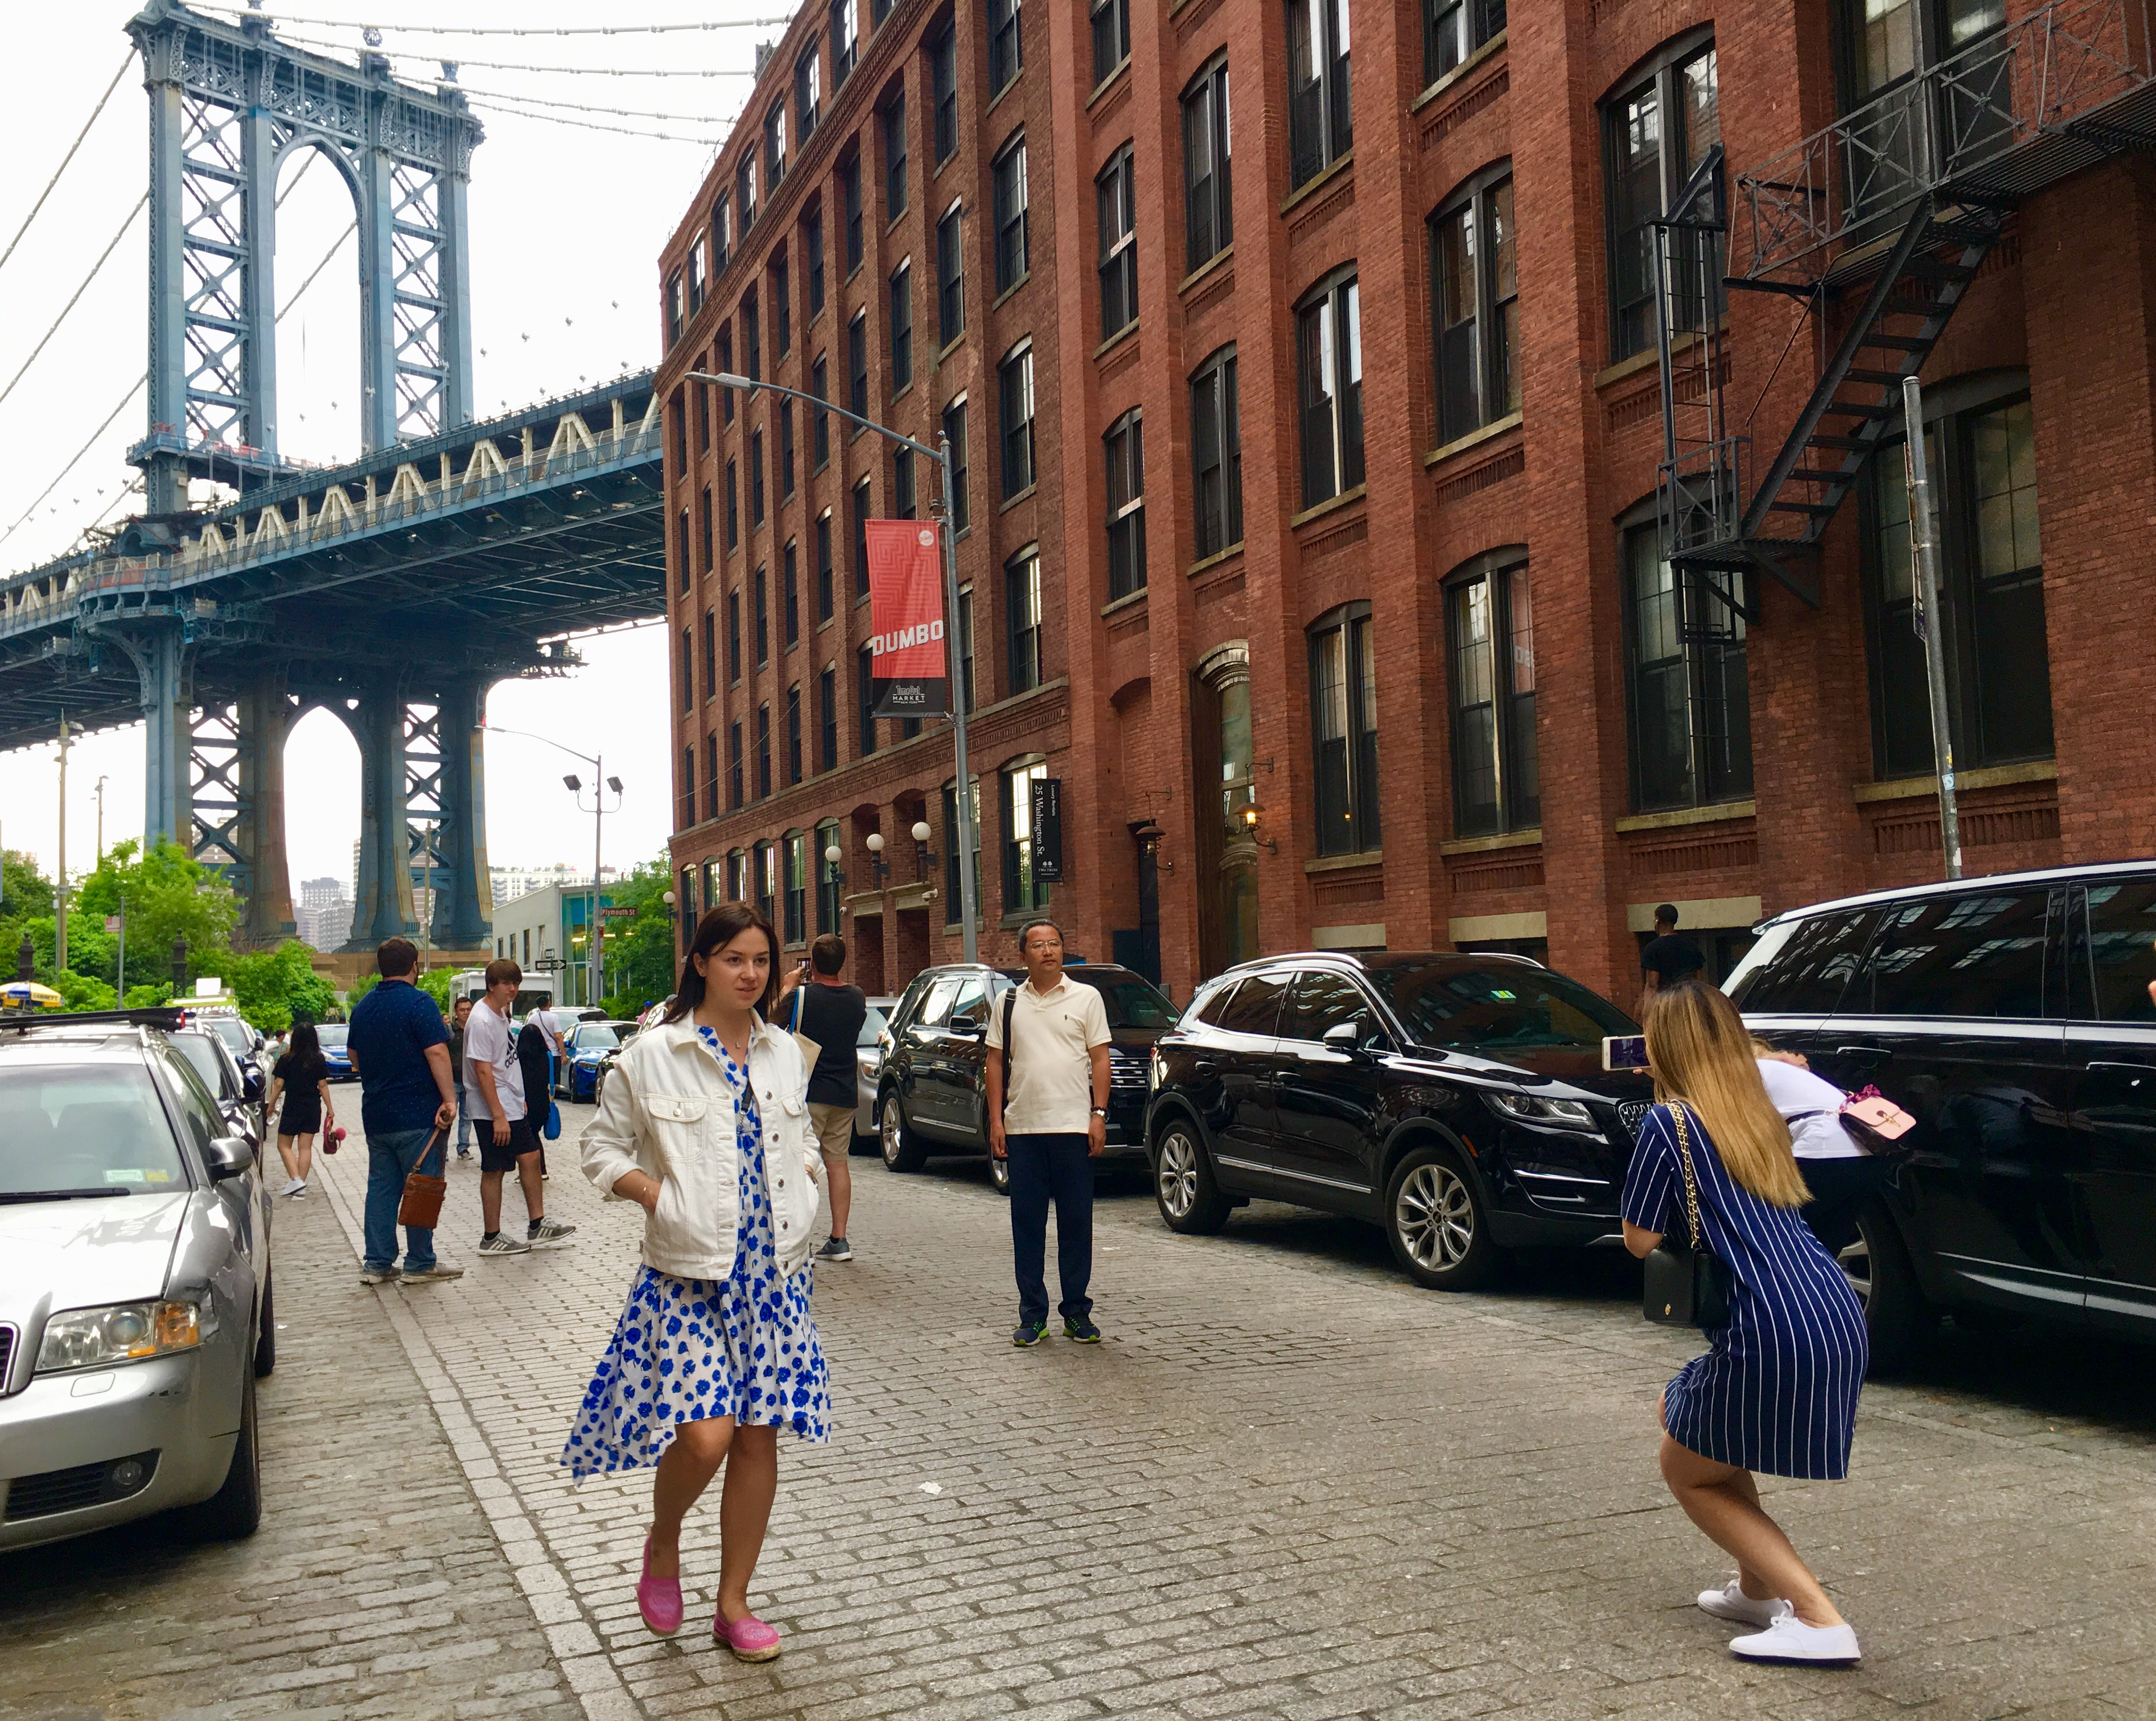 Strike a pose! You're on the most photographed street in Brooklyn. Photo: Lore Croghan/Brooklyn Eagle